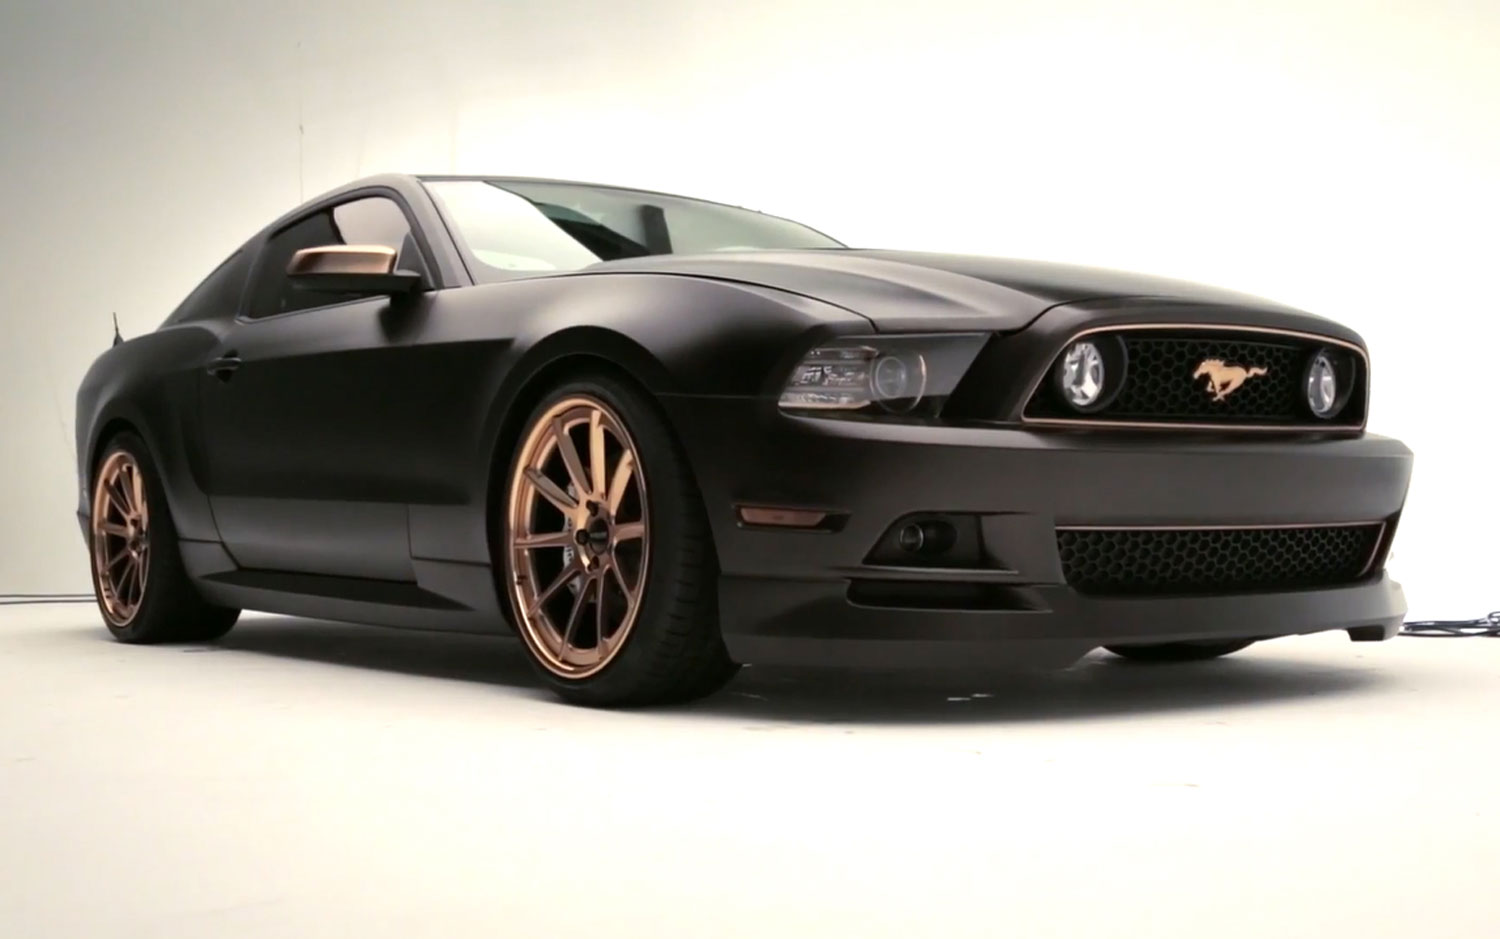 cars model 2013 2014 2013 ford mustang gt high gear from. Black Bedroom Furniture Sets. Home Design Ideas